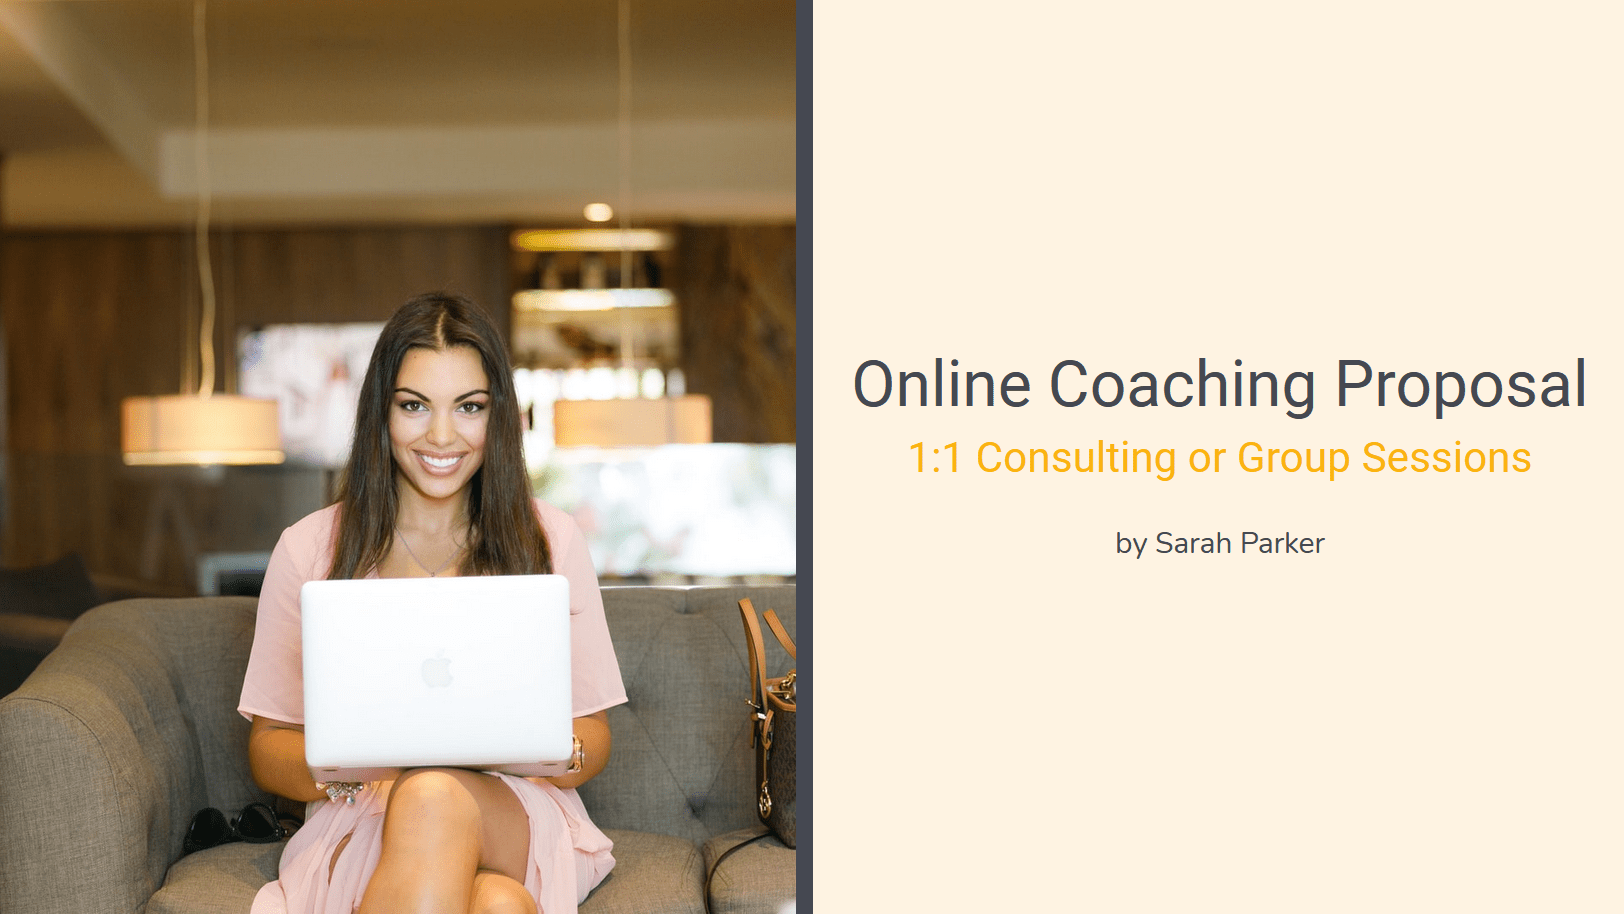 Convey the benefits of your coaching package, terms and conditions and invoicing details. Explain why you are the go-to coach for the job and why you can deliver the content scope better than anyone else.